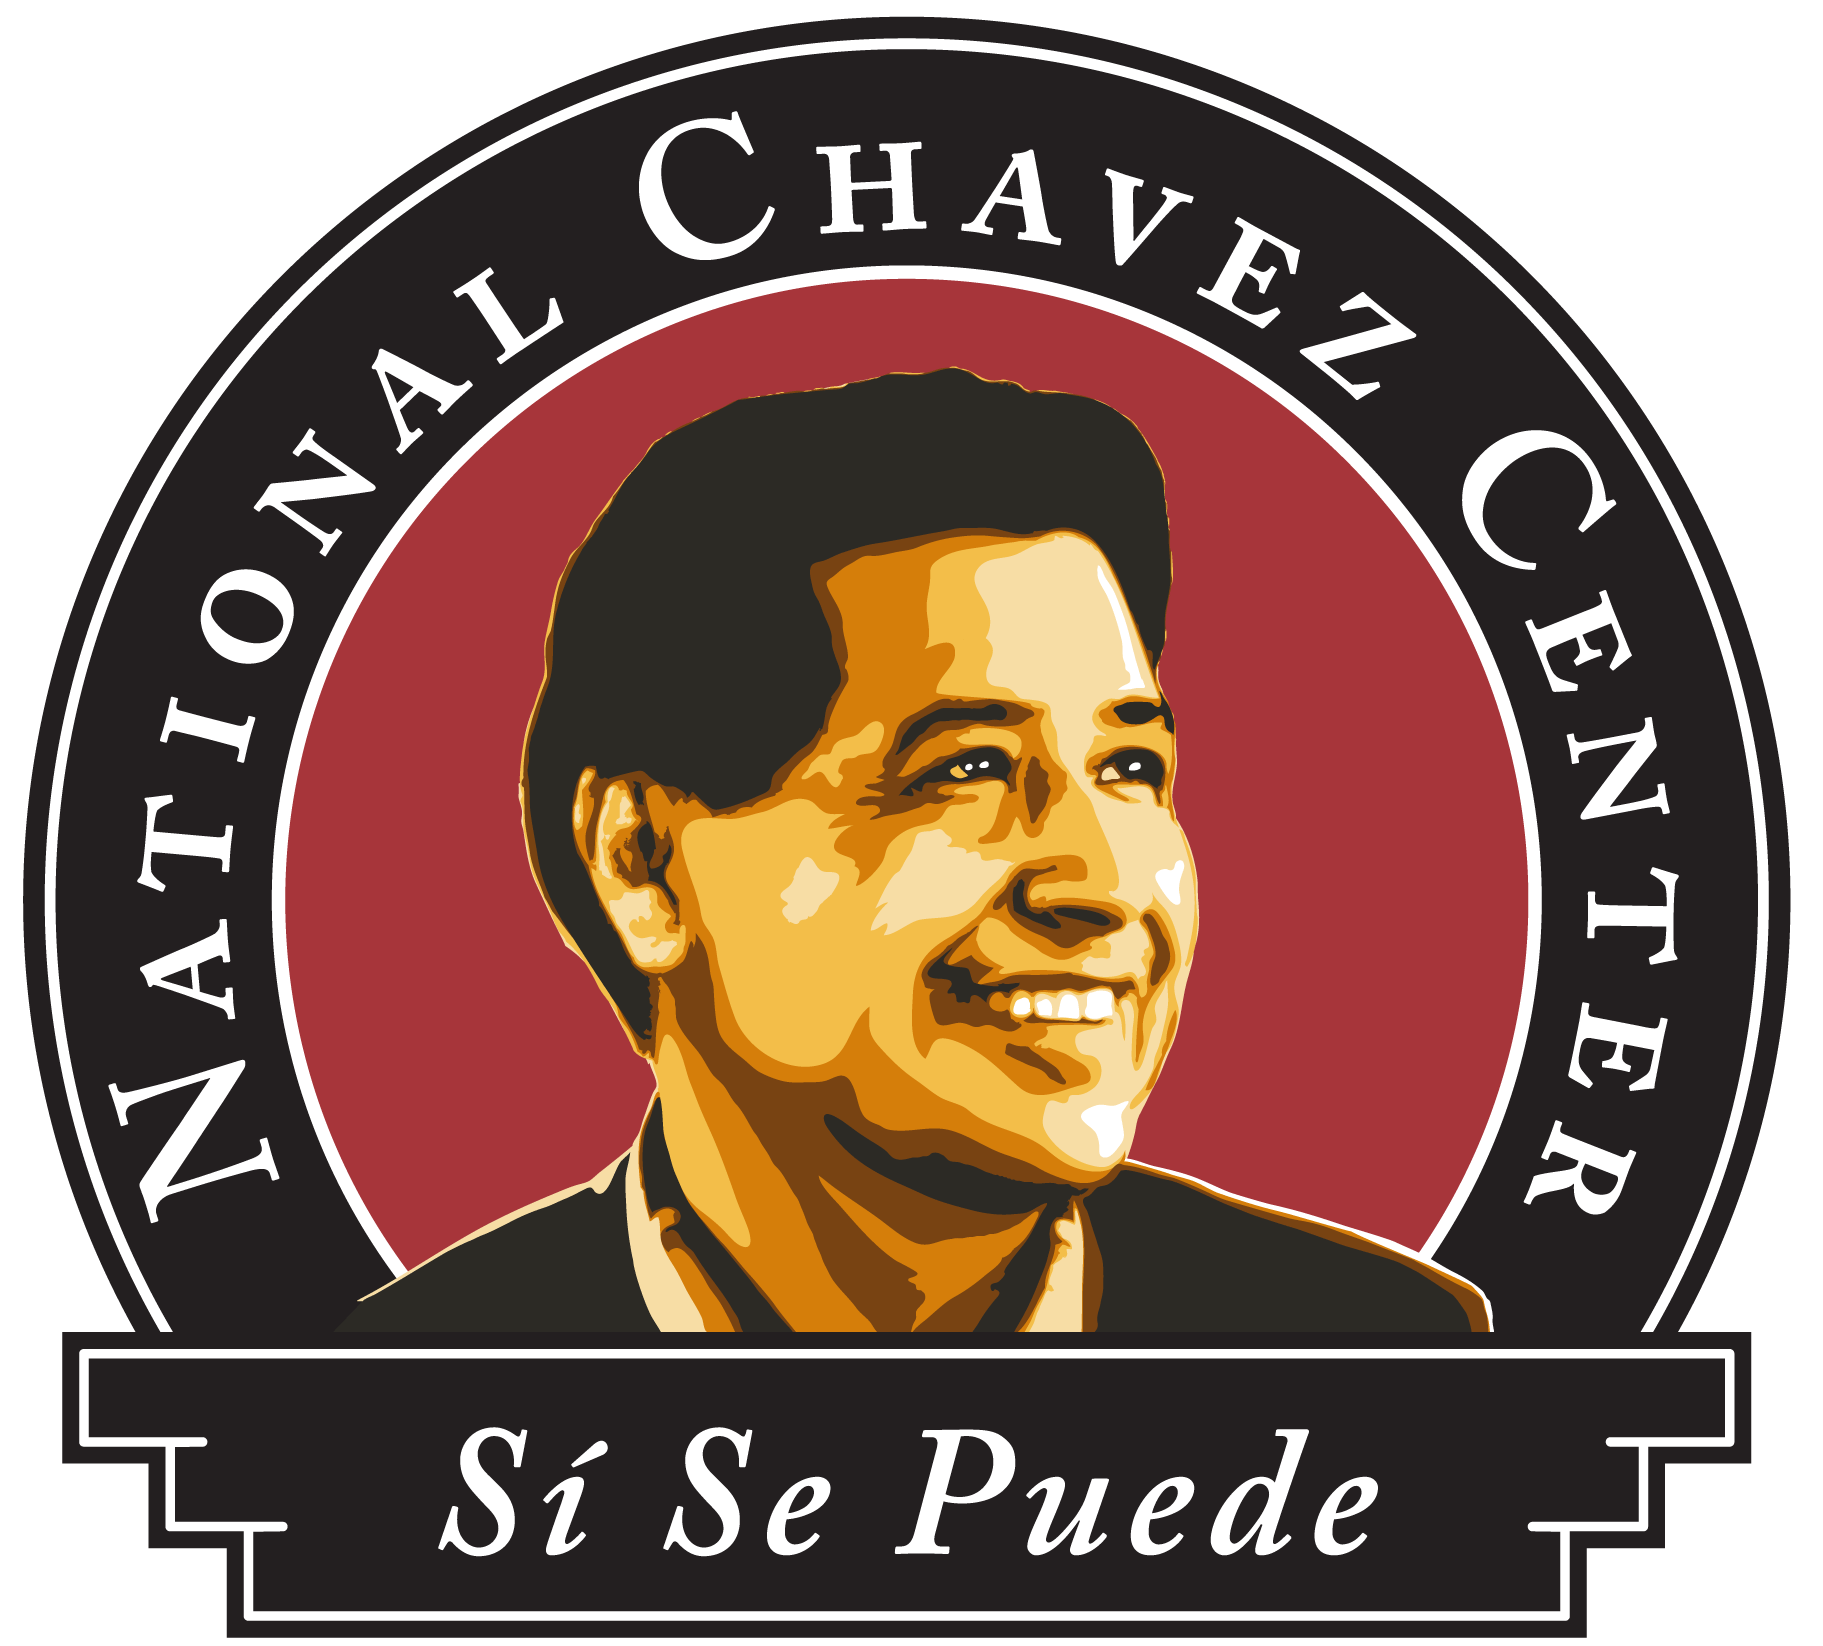 National Chavez Center Store